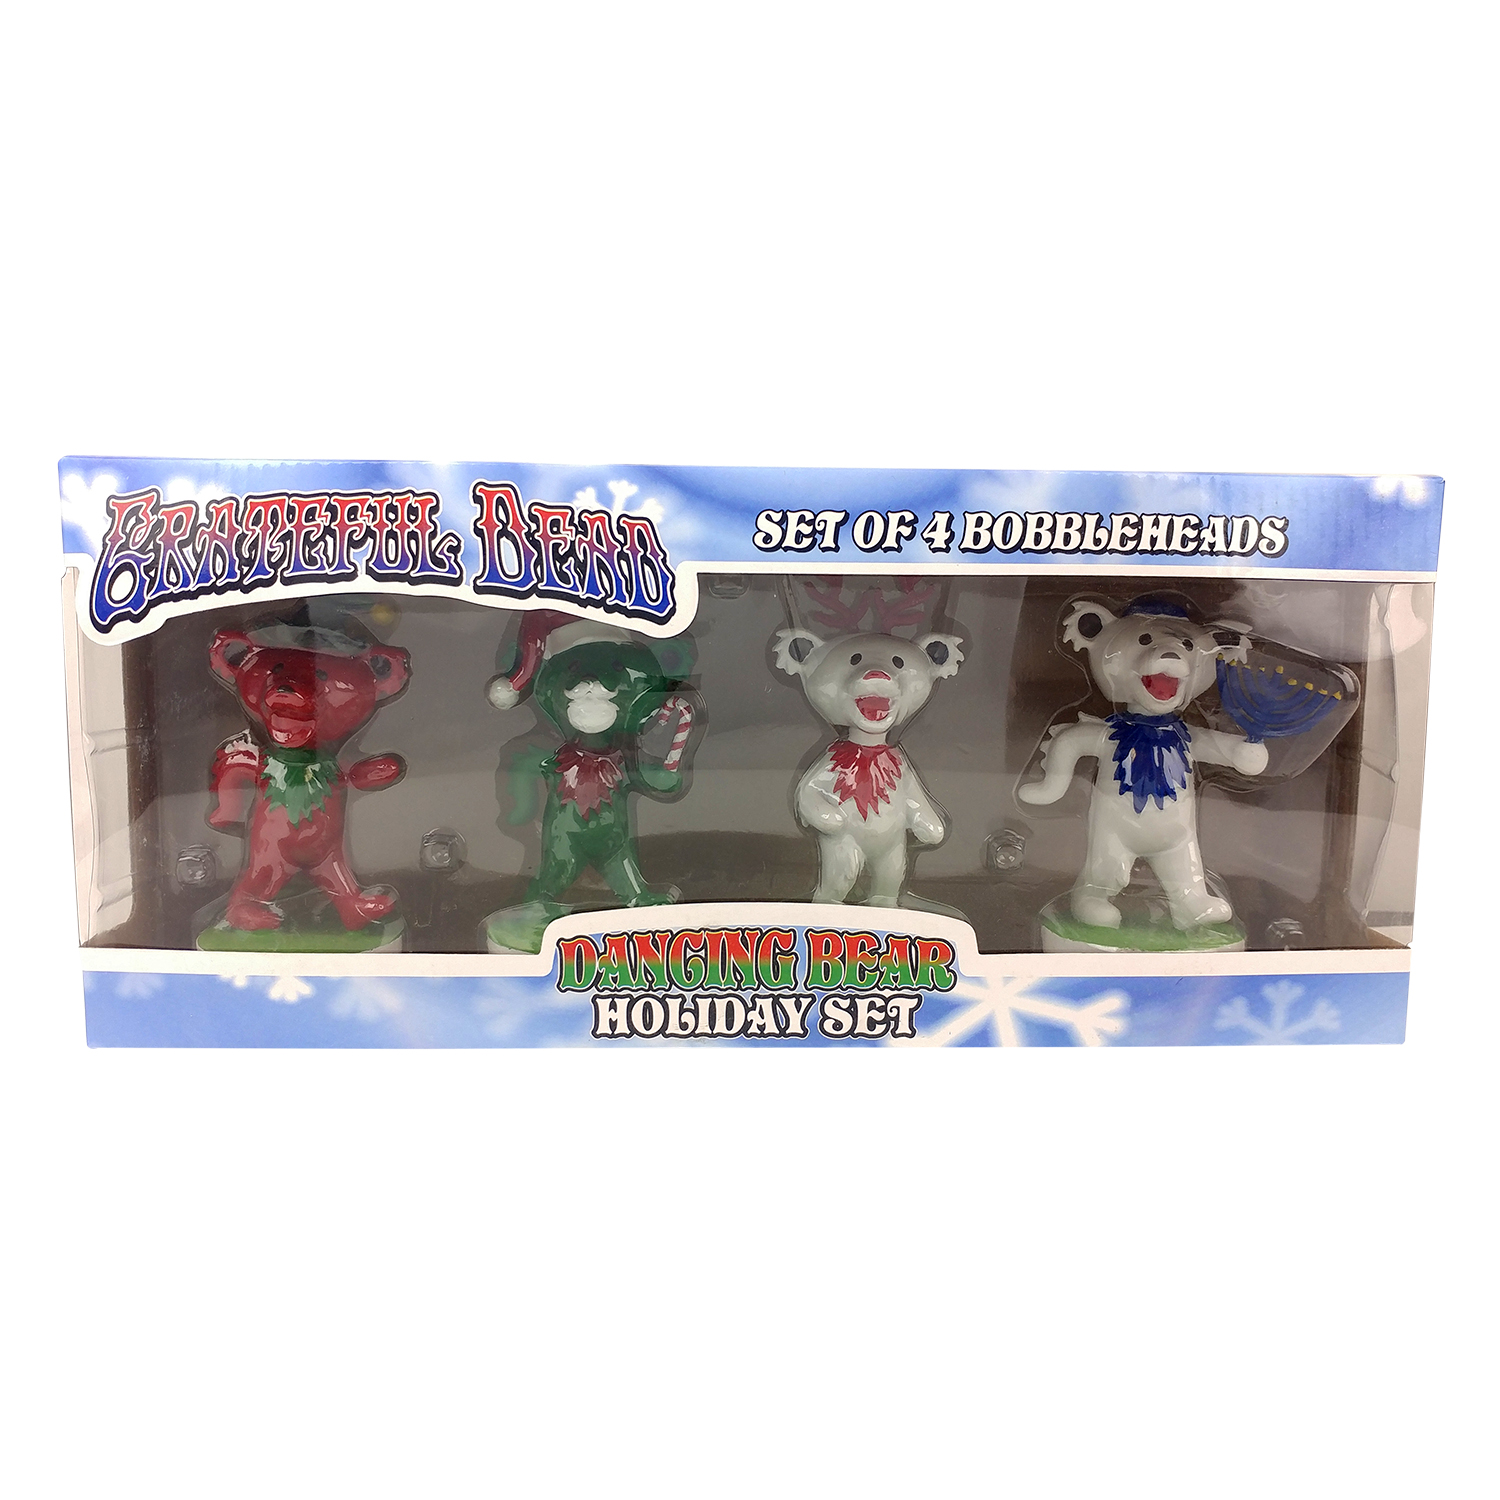 Grateful Dead Dancing Bears Holiday Set Gallery